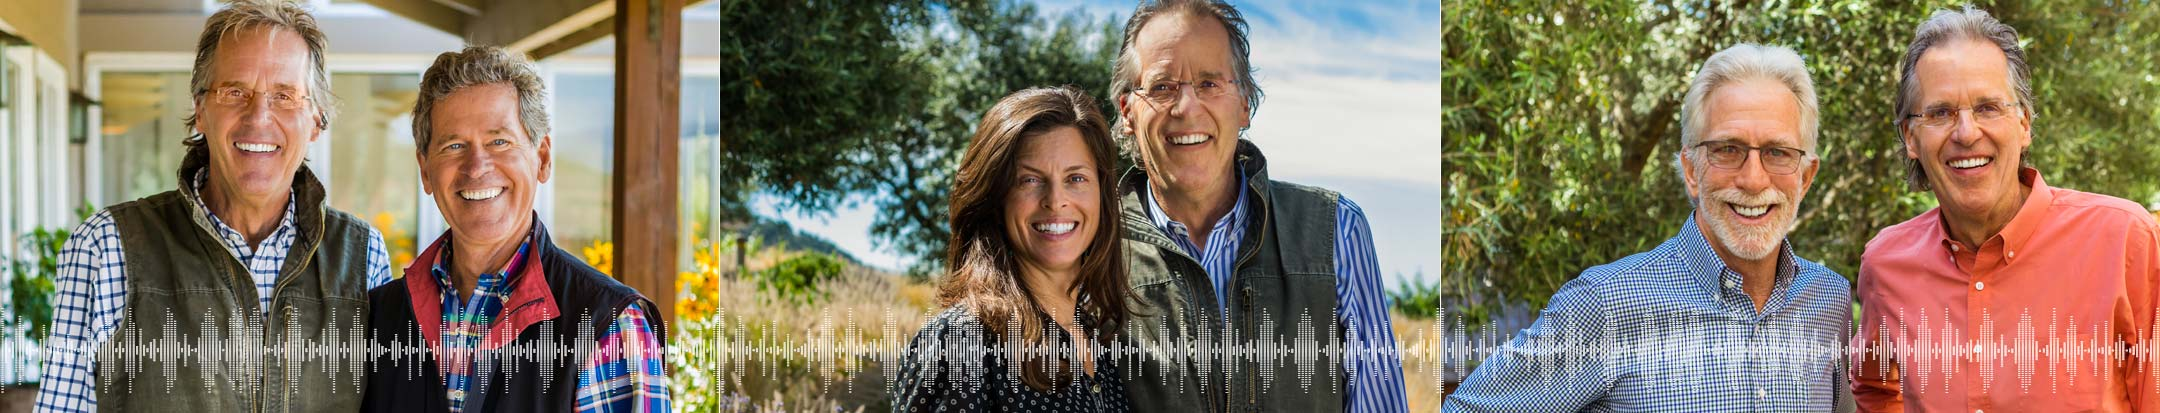 guests on The Taste podcast